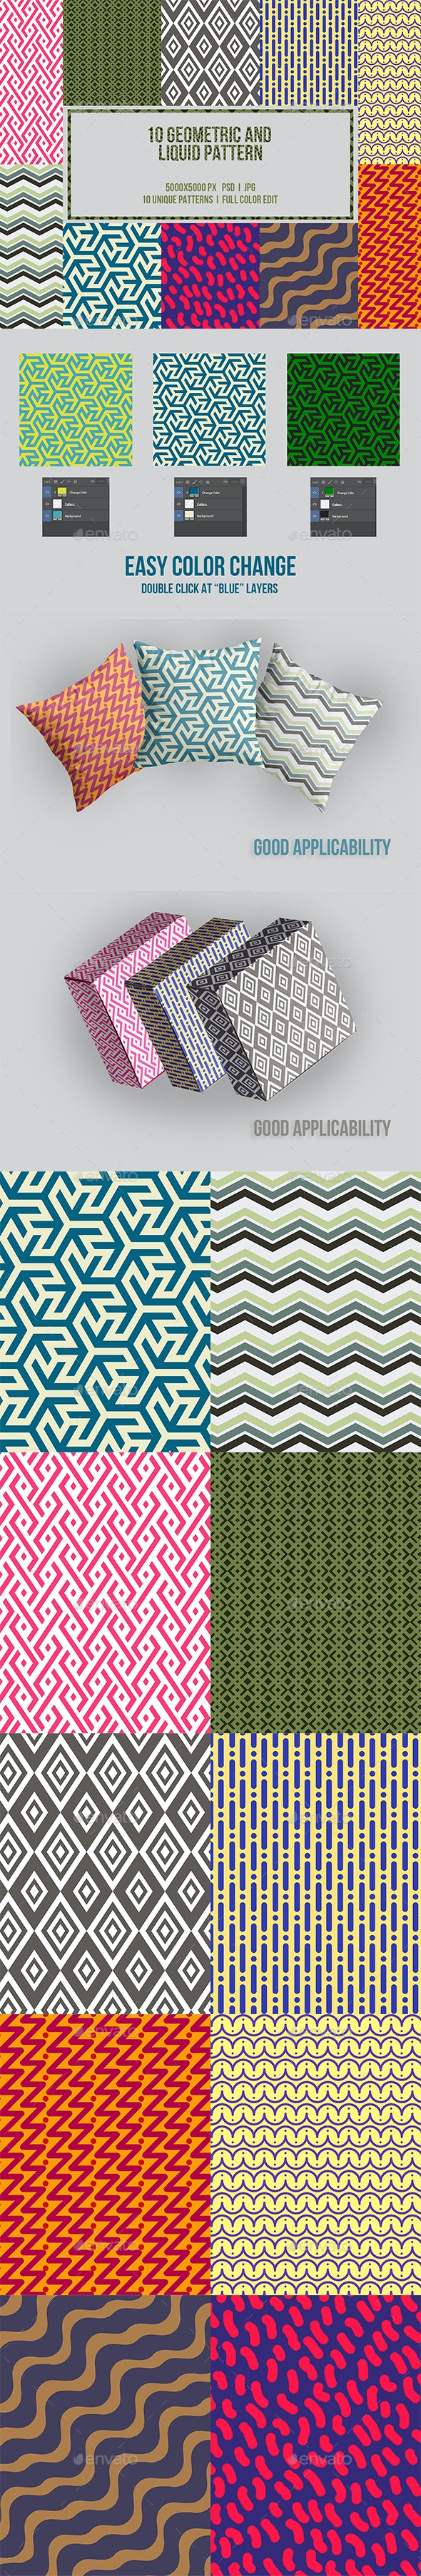 10 Geometric and Liquid Pattern - Backgrounds Graphics